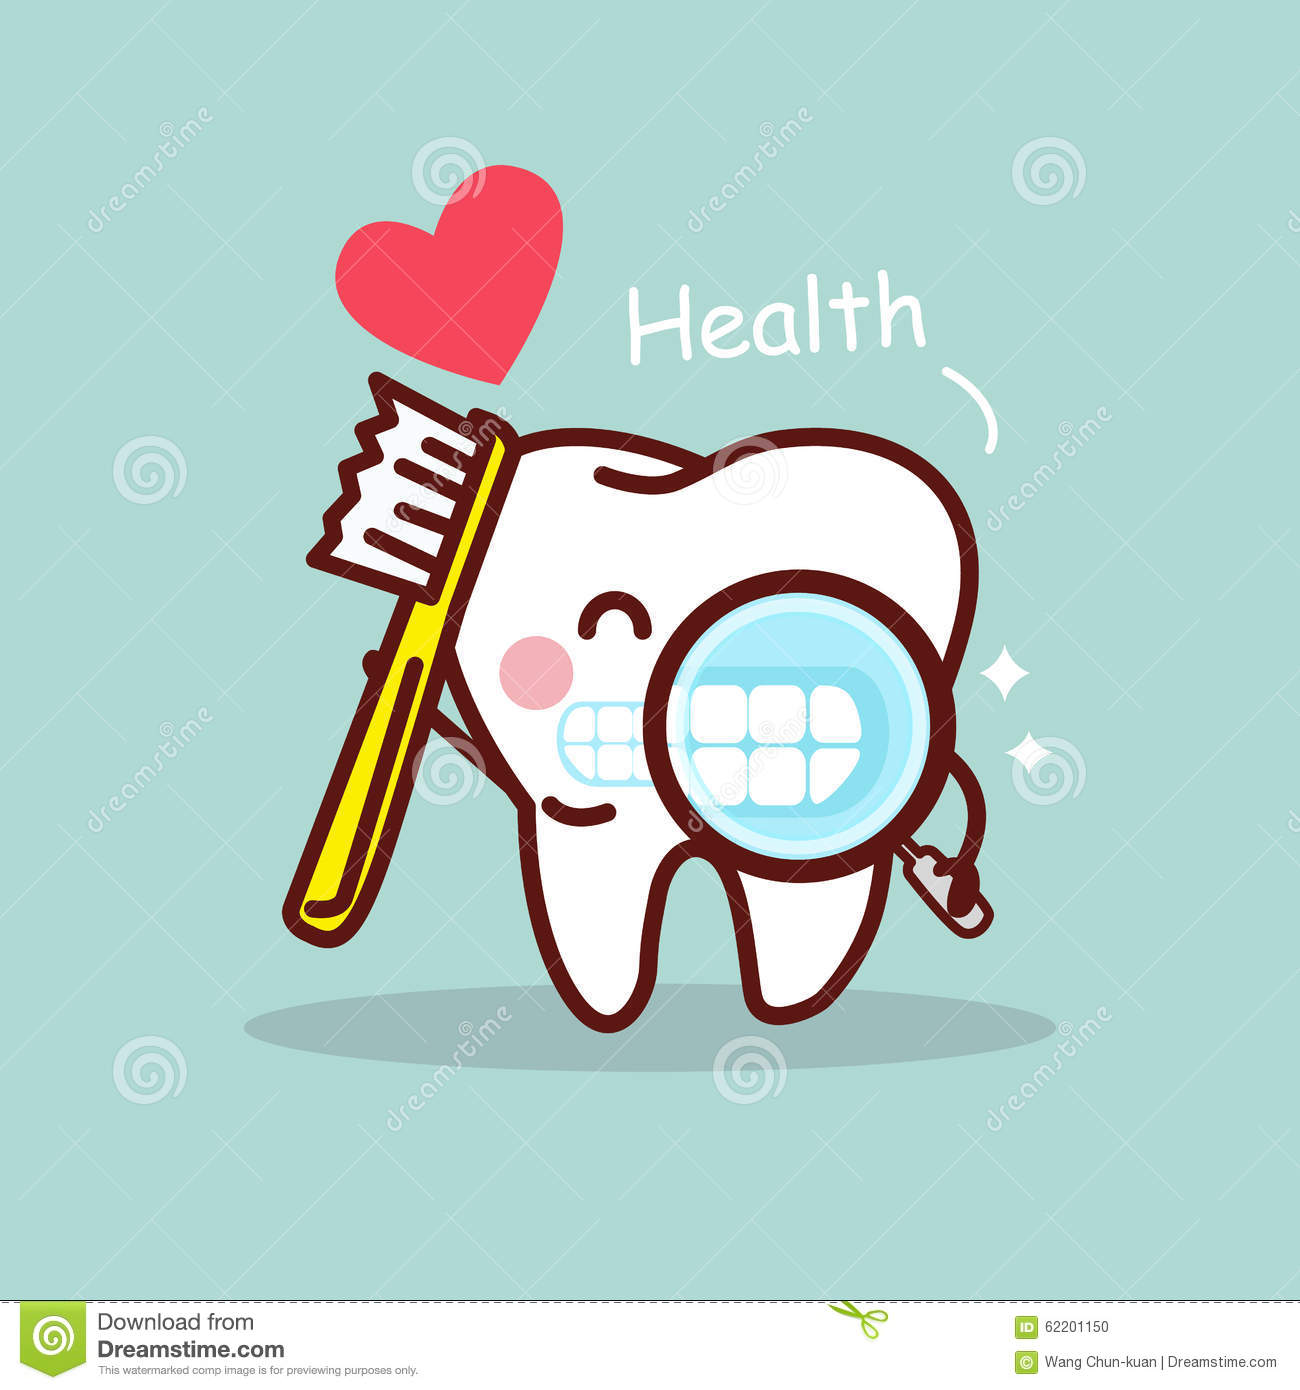 health-cartoon-tooth-great-dental-care-concept-62201150.jpg